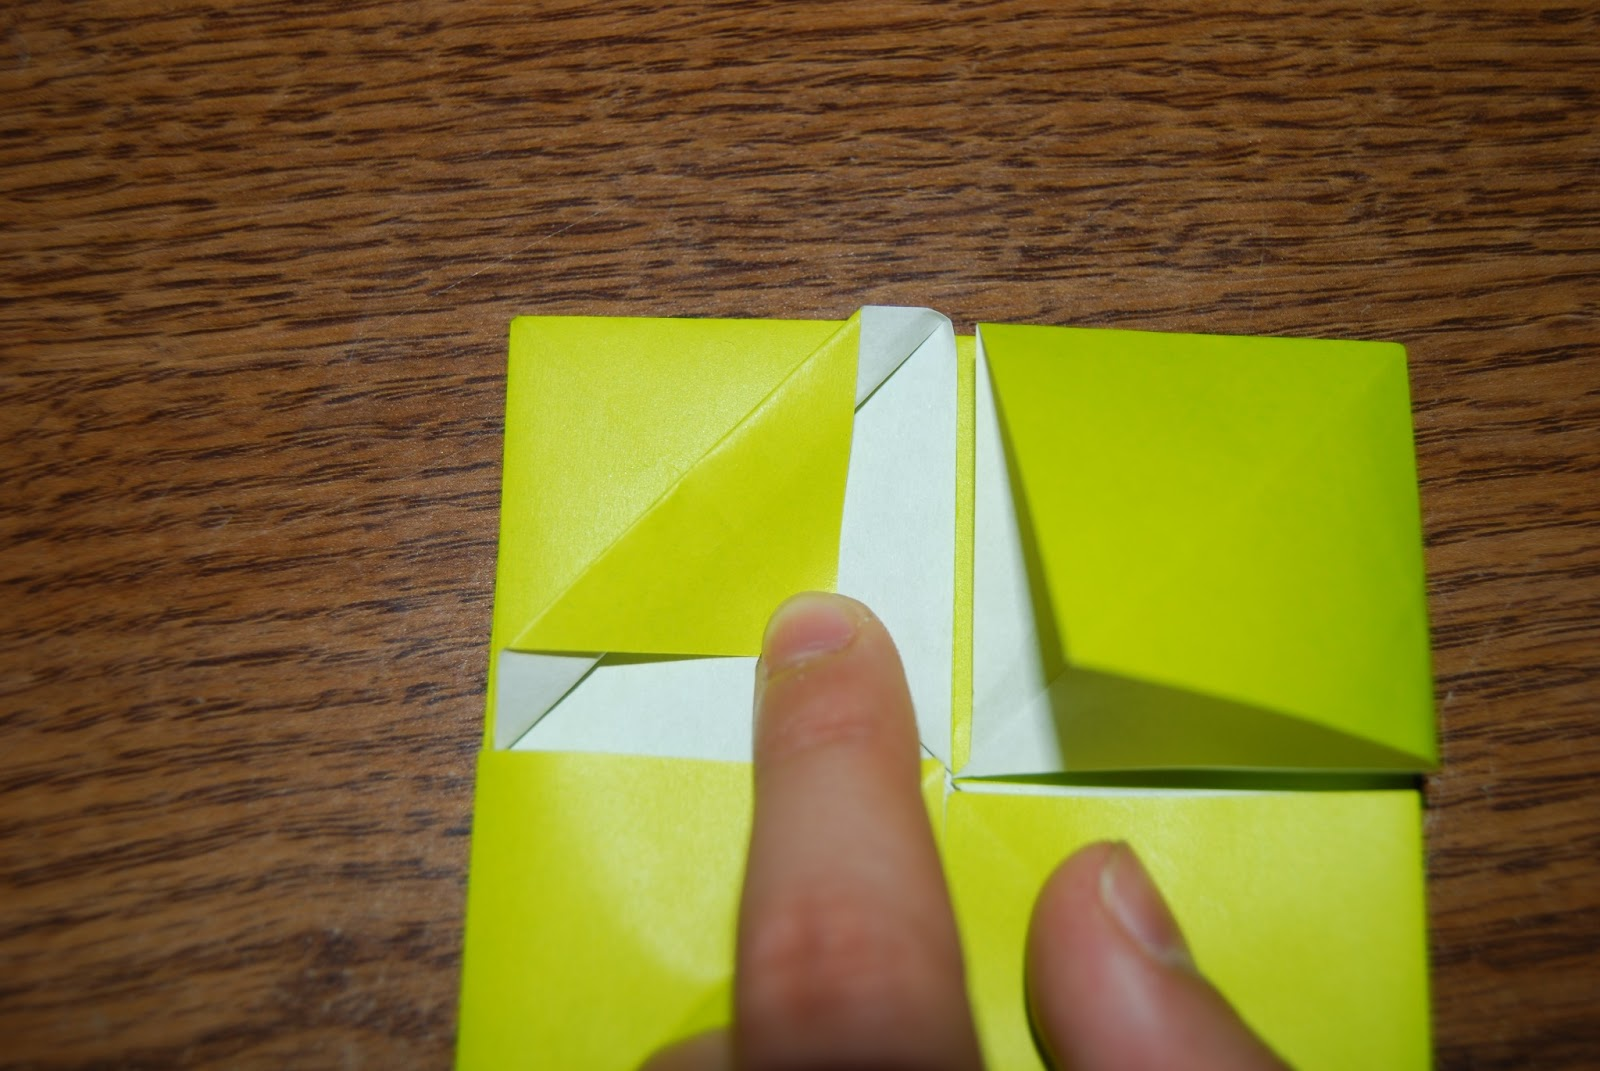 The froebel variations step 2 now valley fold it back partway to start crimppleat folding it jeuxipadfo Image collections